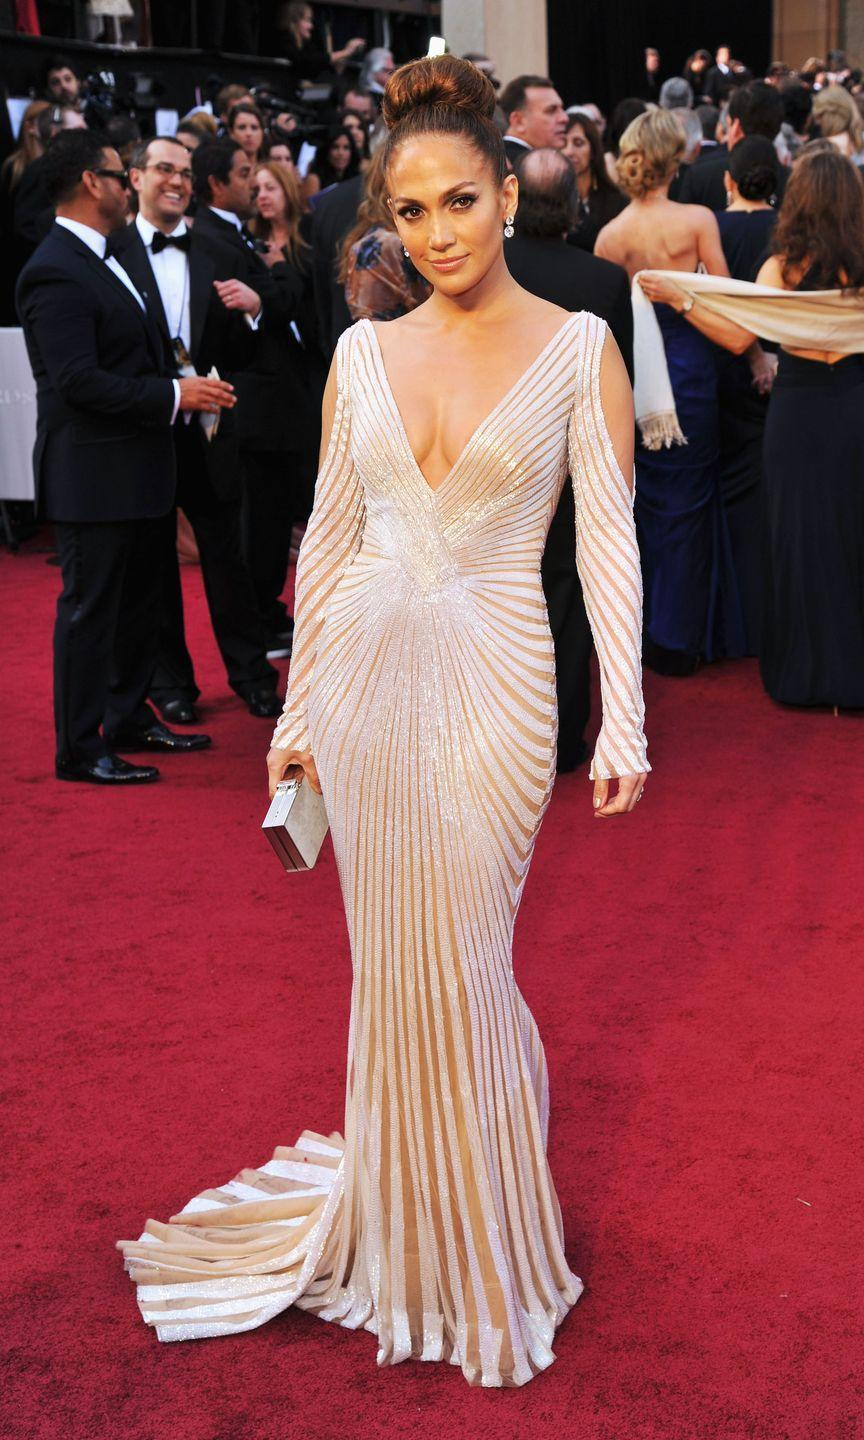 <p><strong>When: </strong>March 2012</p><p><strong>Where: </strong>The Academy Awards</p><p><strong>Wearing: </strong>Zuhair Murad</p>